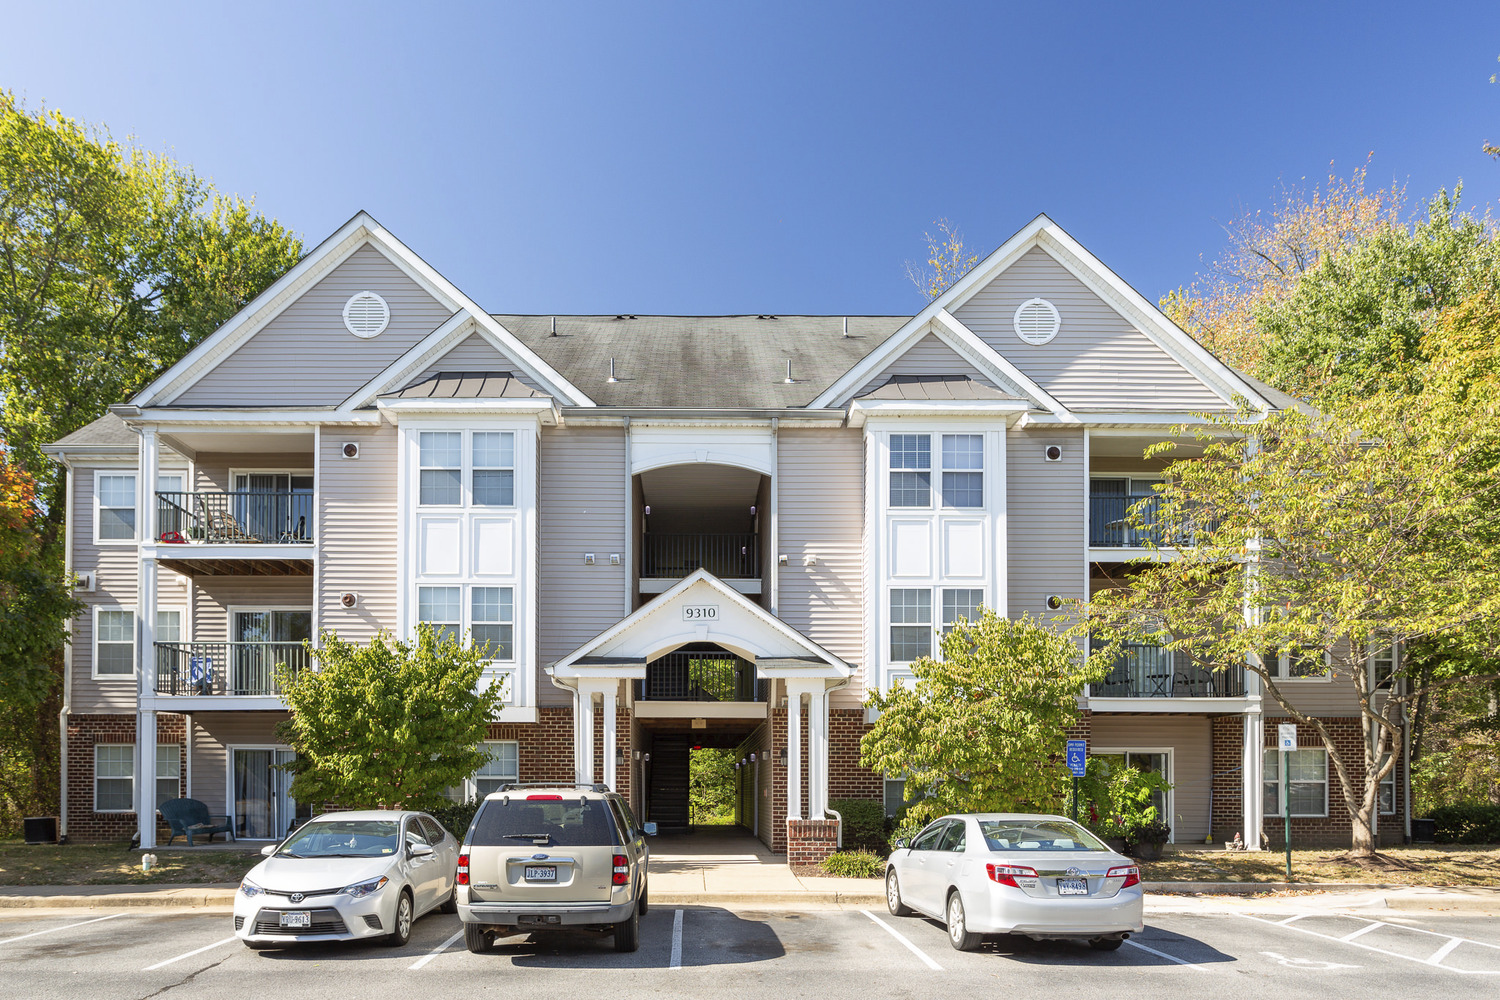 CBG builds The Fields at Lorton Station Phase II, a 80 Market-Rate and Affordable Apartments in Lorton, VA